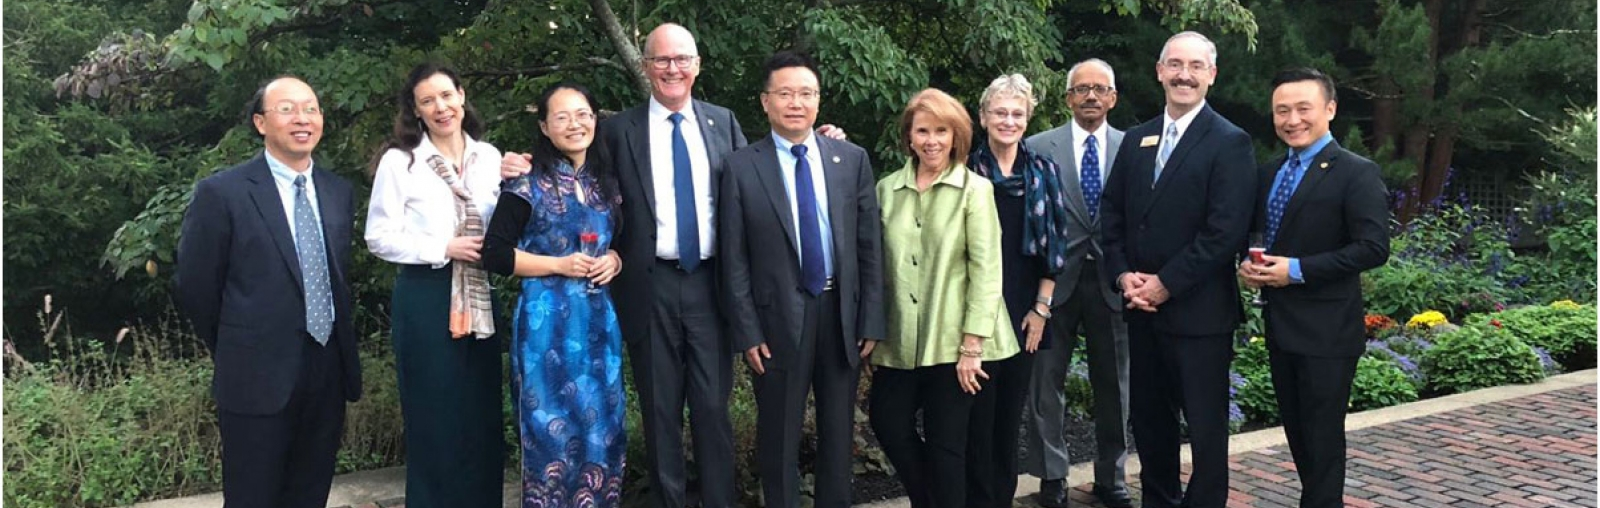 UNH President Dean and Chengdu University President Wang (3rd and 4th from left) with other university staff